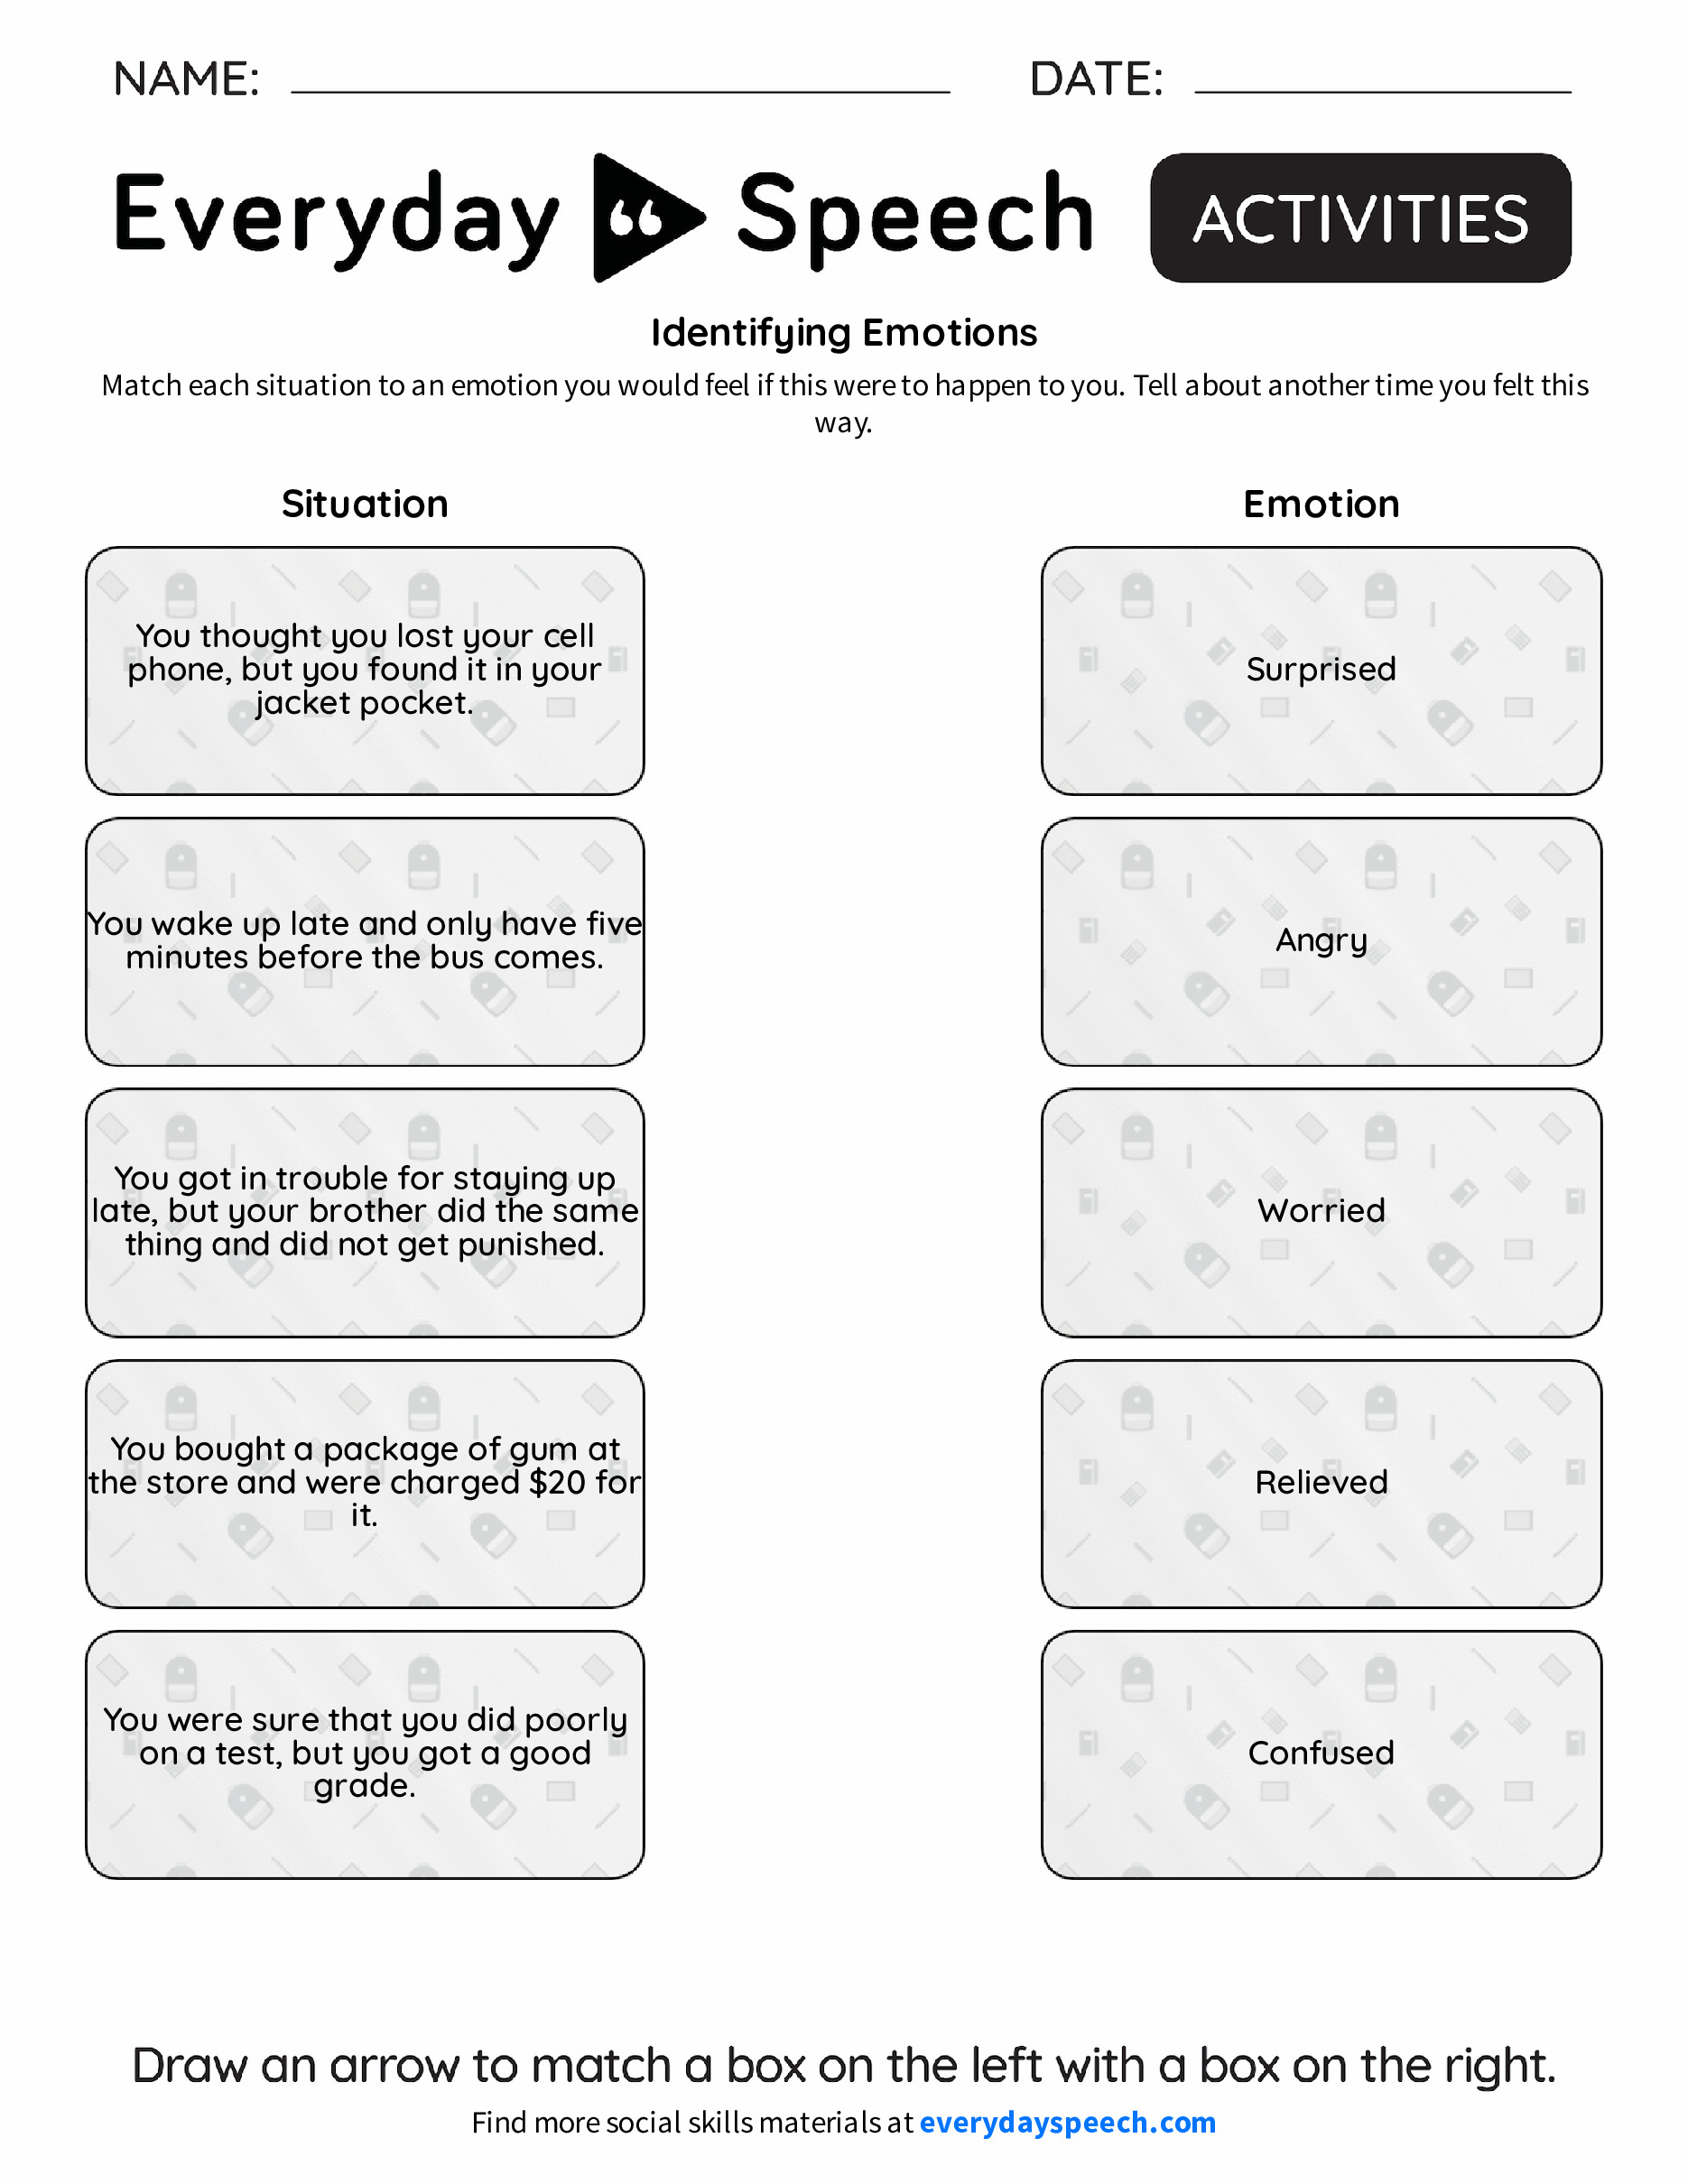 Worksheets Identifying Emotions Worksheet identifying emotions everyday speech emotions